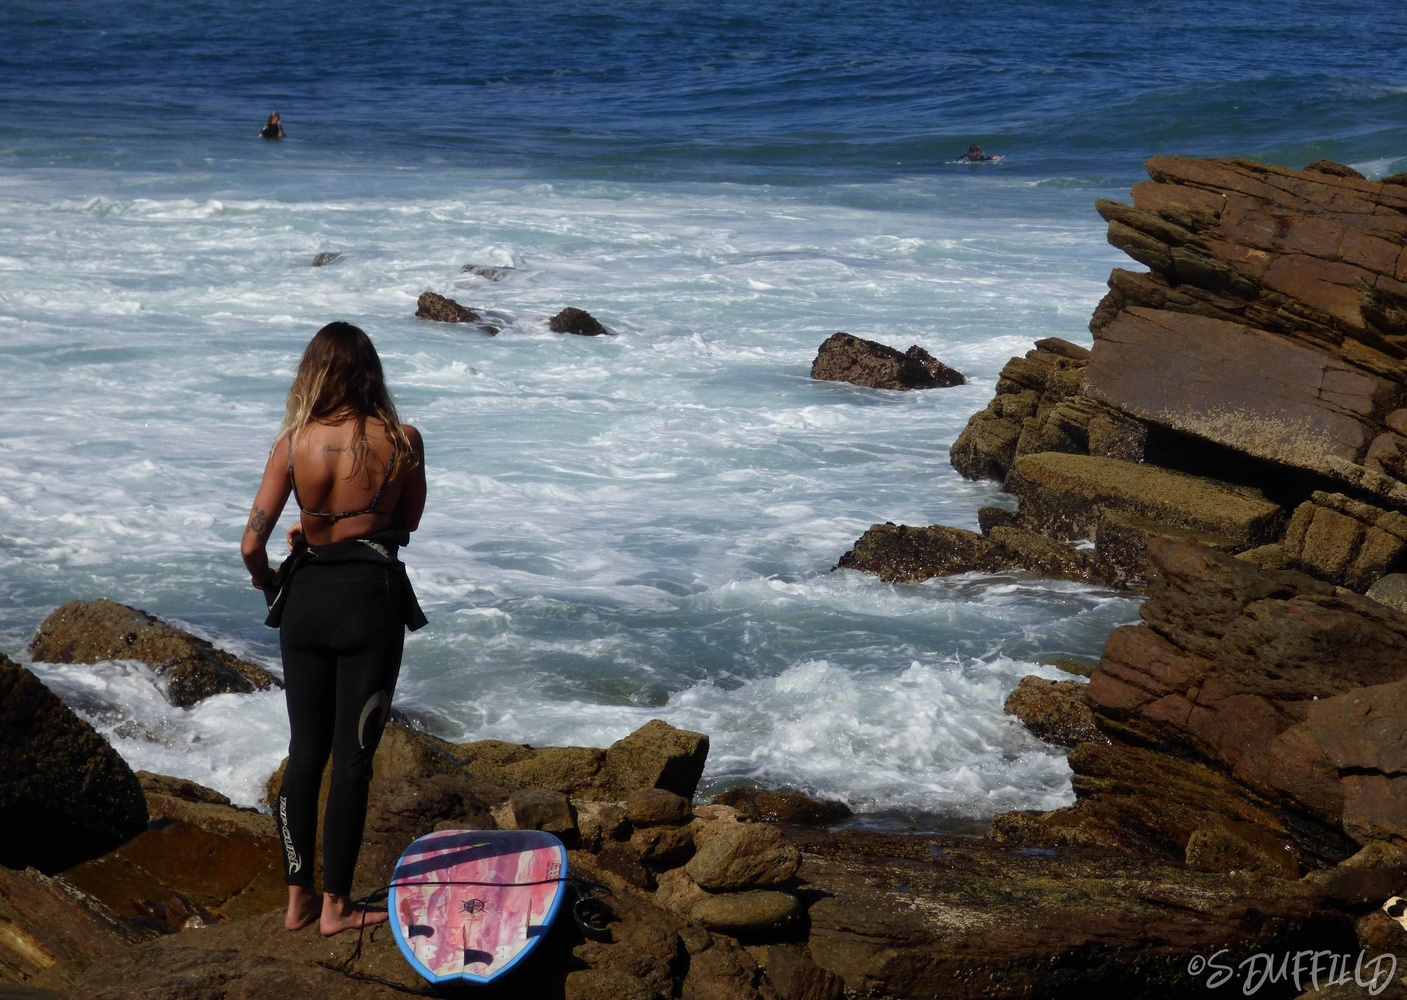 SURF GIRL by stephen duffield